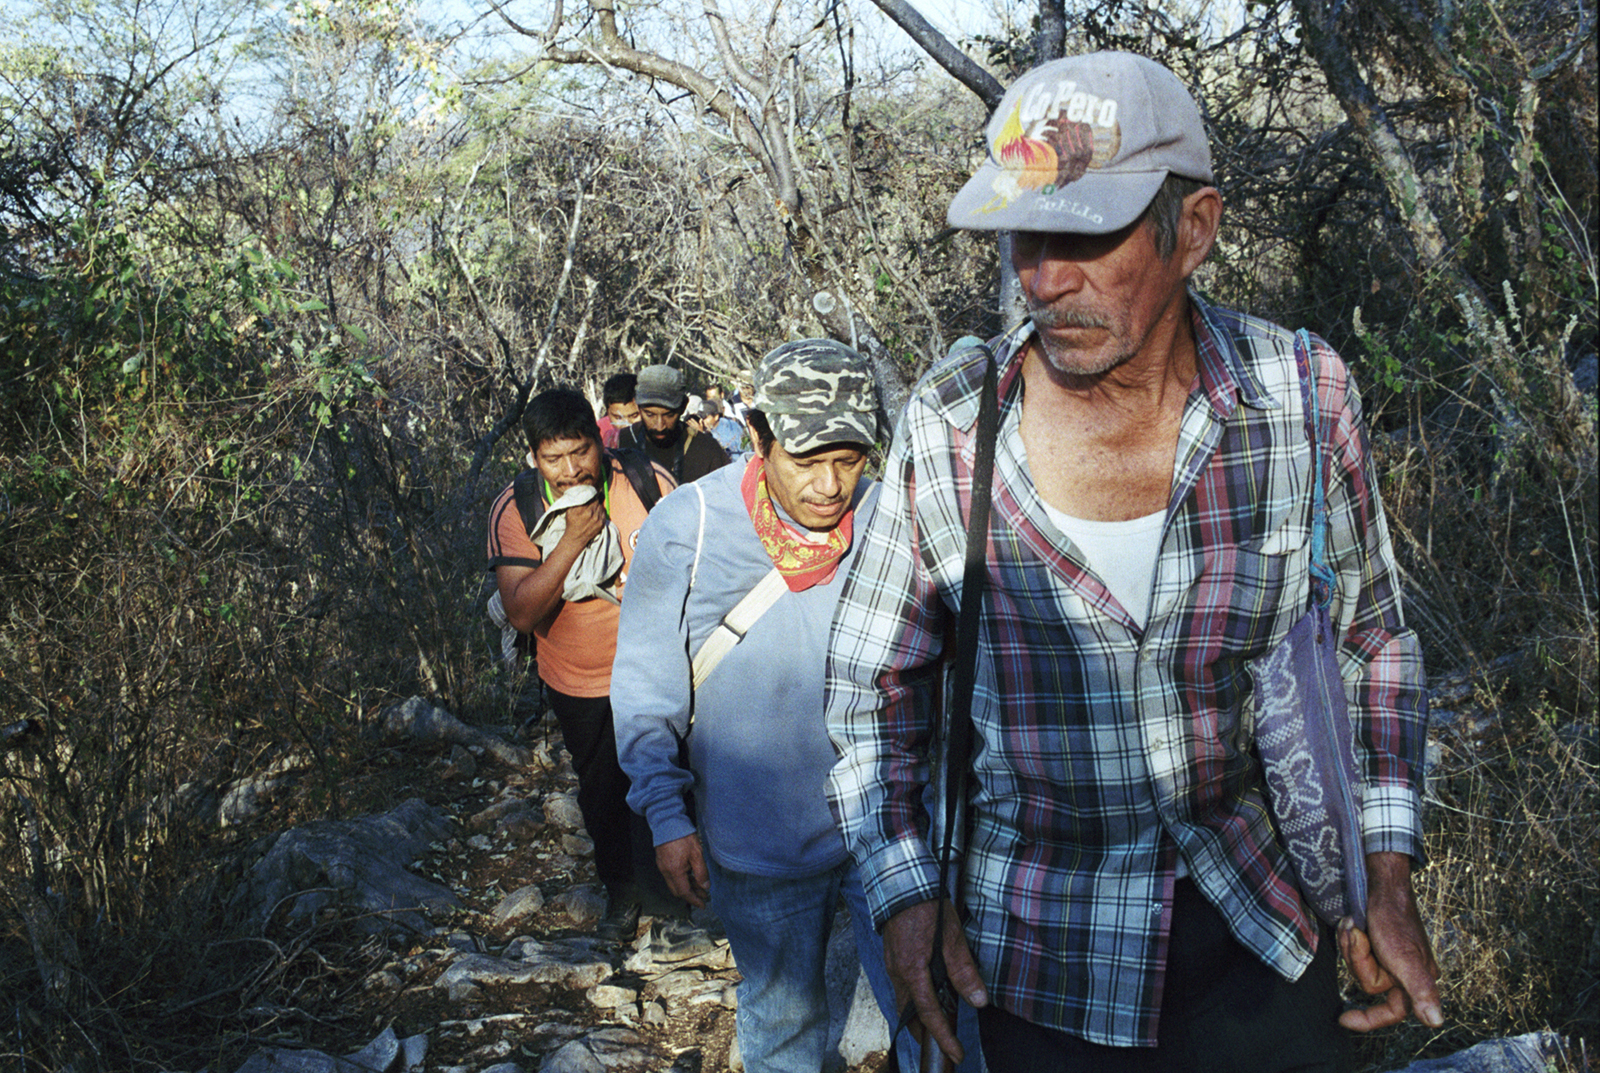 Citizen search brigade for 43 missing students in the hills outside Iguala, the city   where they were kidnapped and disappeared by police. Guerrero, Mexico.      35mm film  8 x 10 inches  $200.00